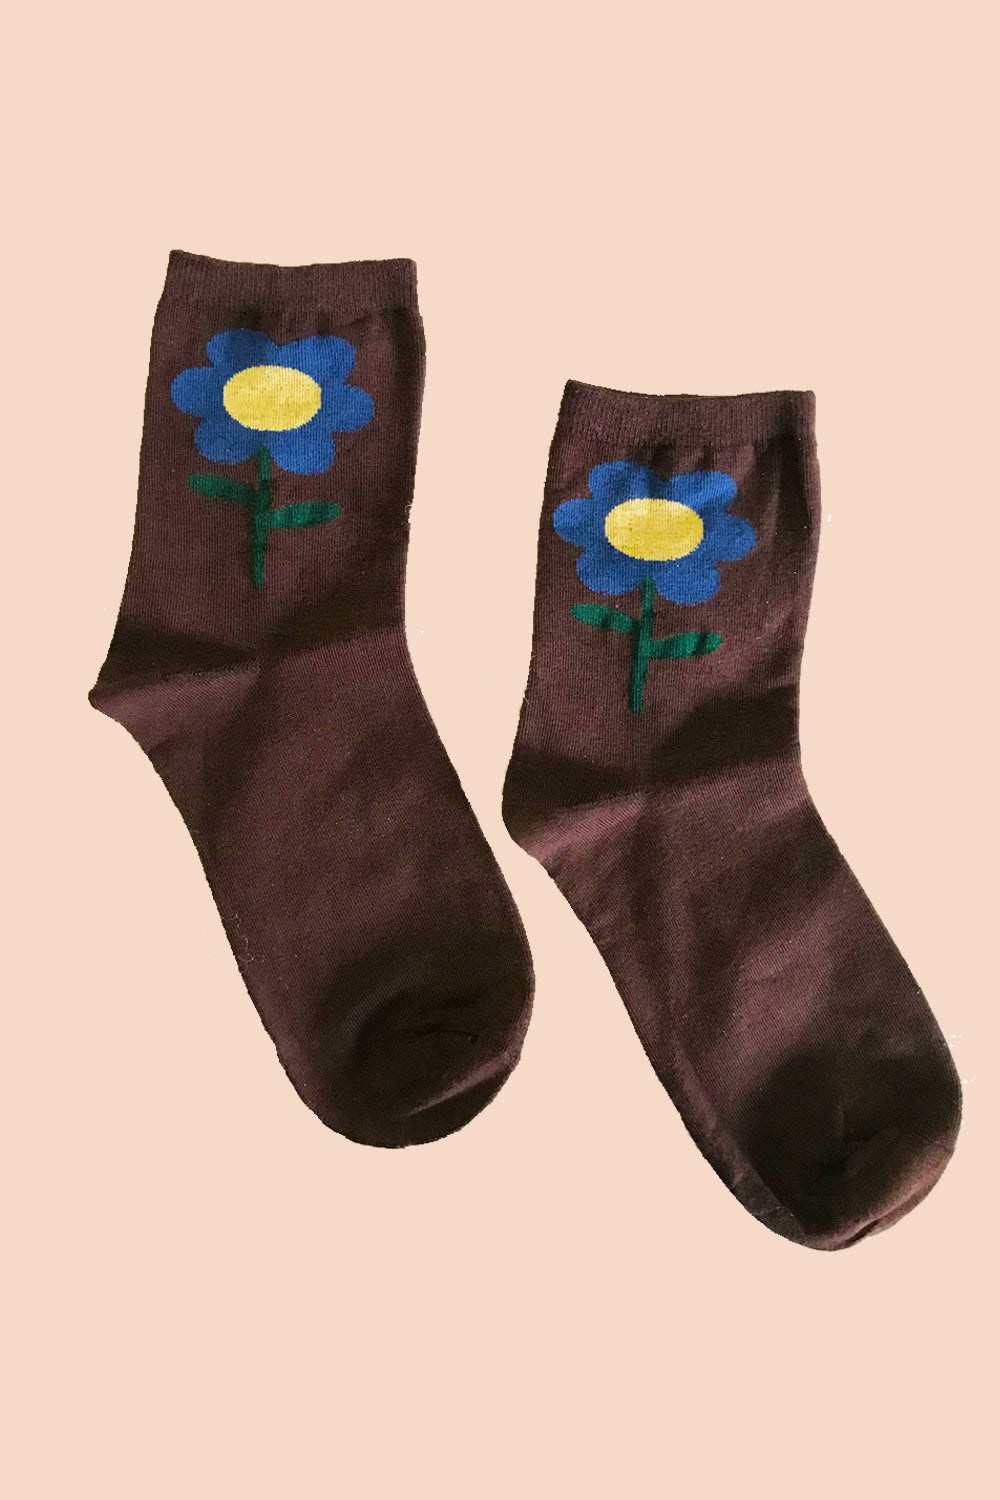 Flower Socks in Chocolate